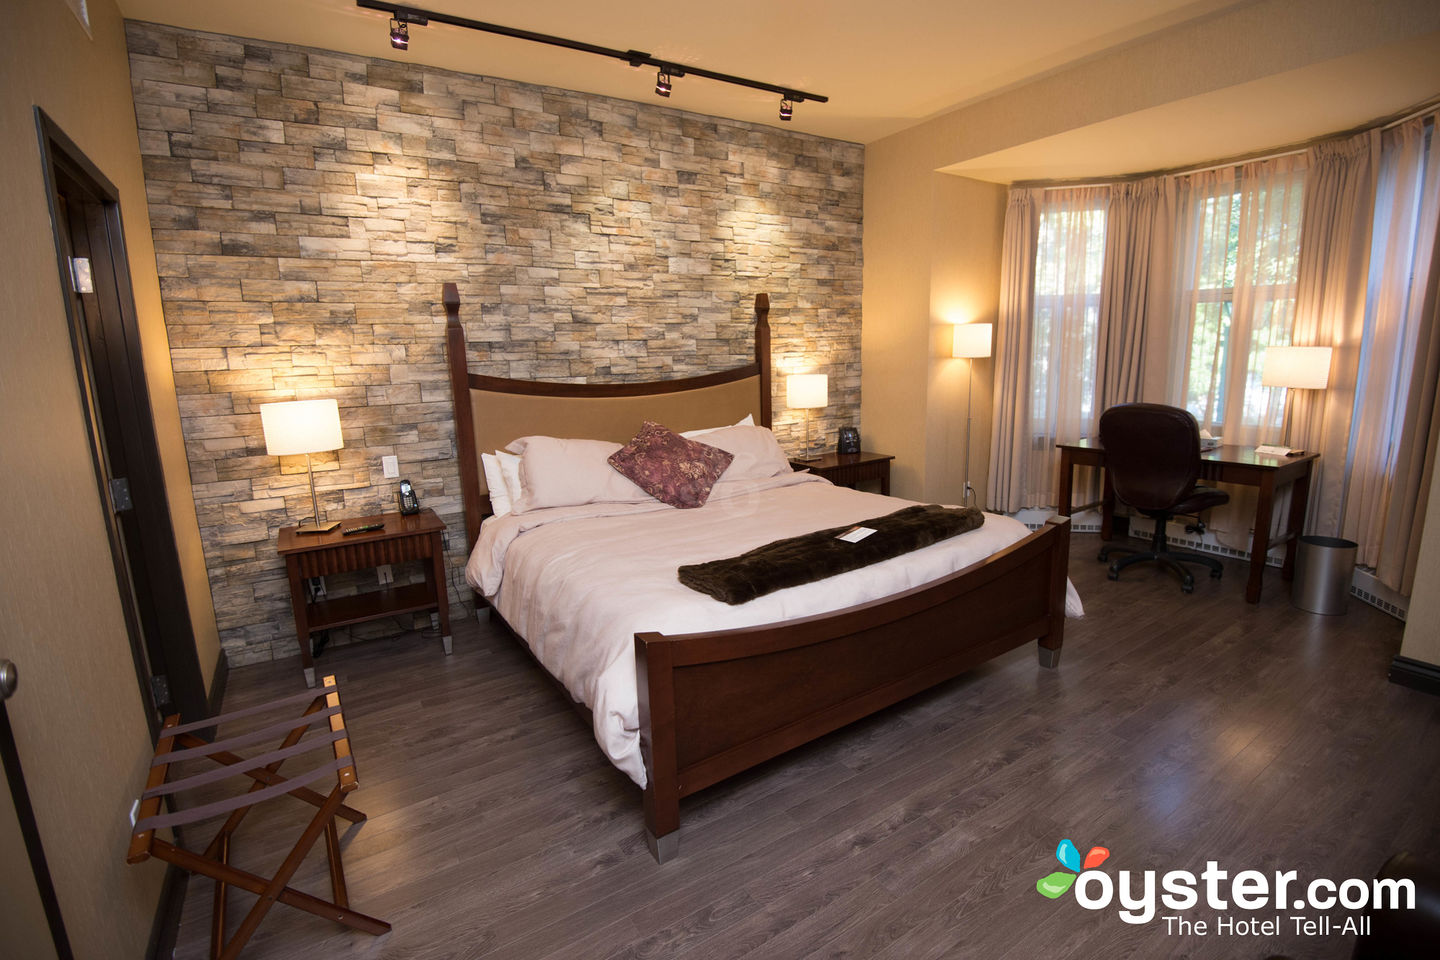 Schlafzimmer Set Bellevue Hotel Chateau Bellevue - Inspirations Spa At The Hotel Chateau Bellevue | Oyster.com Hotel Photos